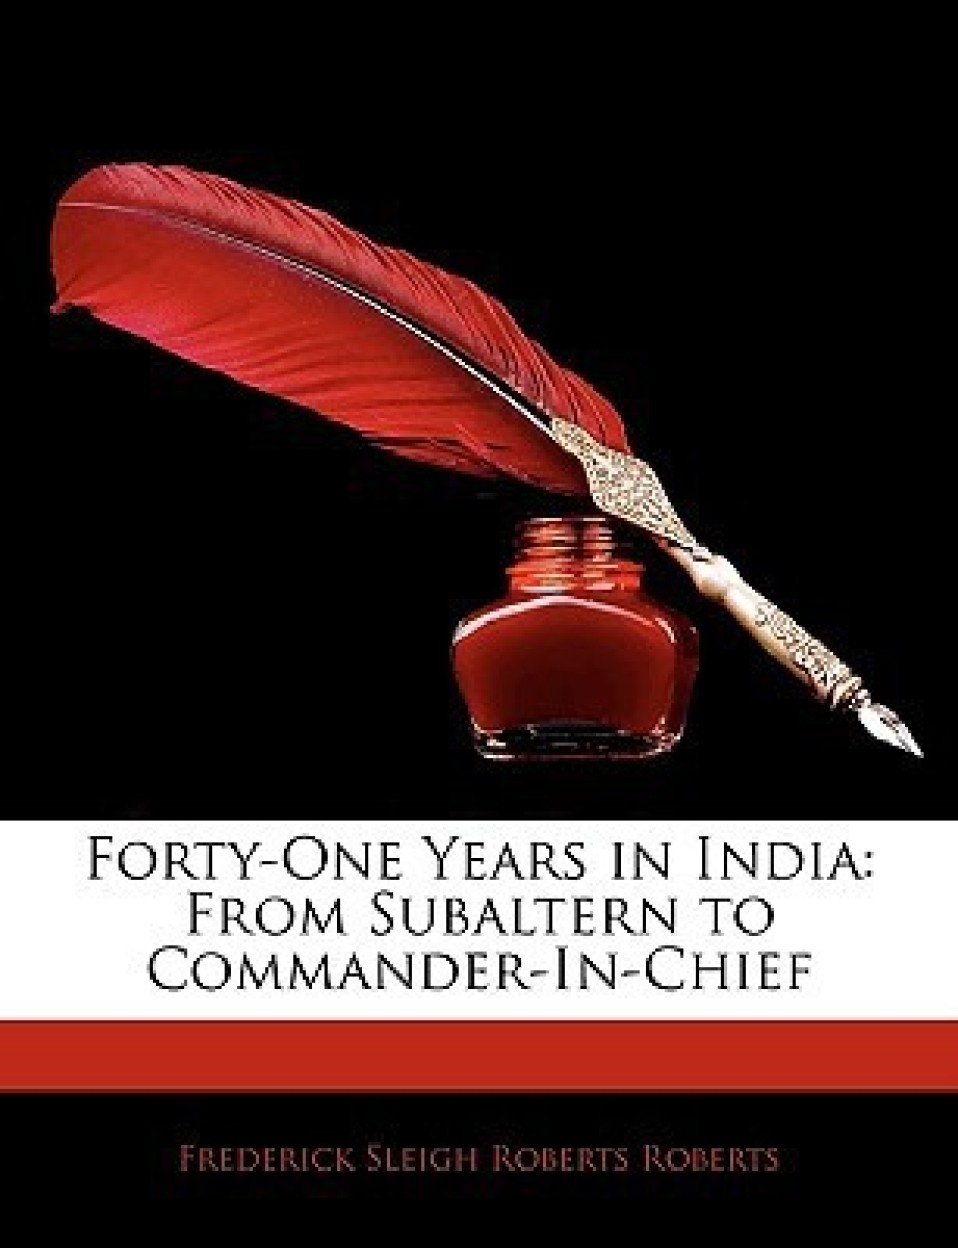 Forty-One Years In India: From Subaltern To Commander-In-Chief by Frederick Sleigh Roberts Roberts